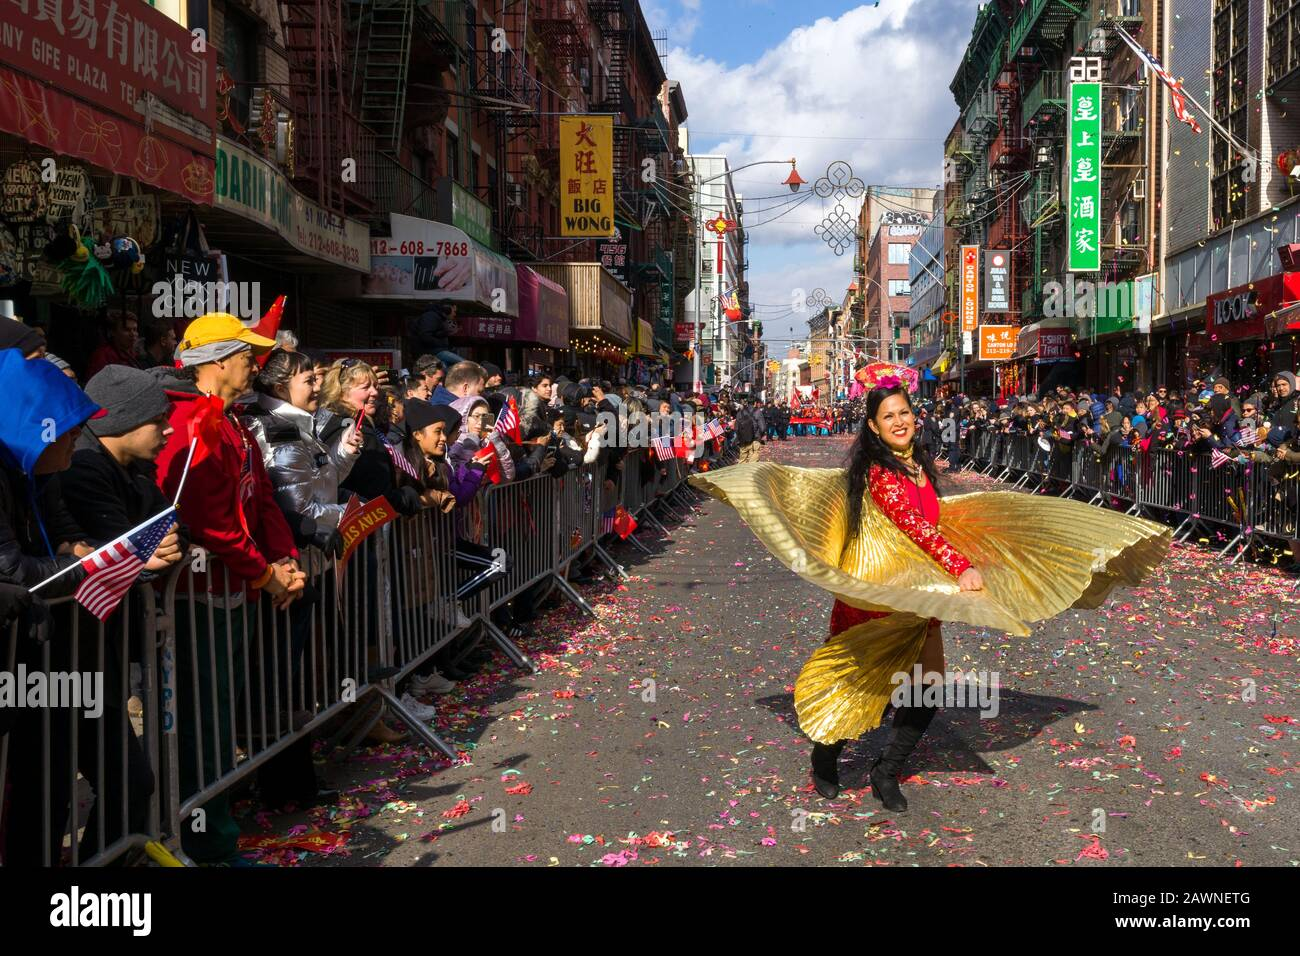 New York, USA. 9th Feb, 2020. A dancer performs during the Chinese New Year parade in Chinatown. Credit: Enrique Shore/Alamy Live News Stock Photo